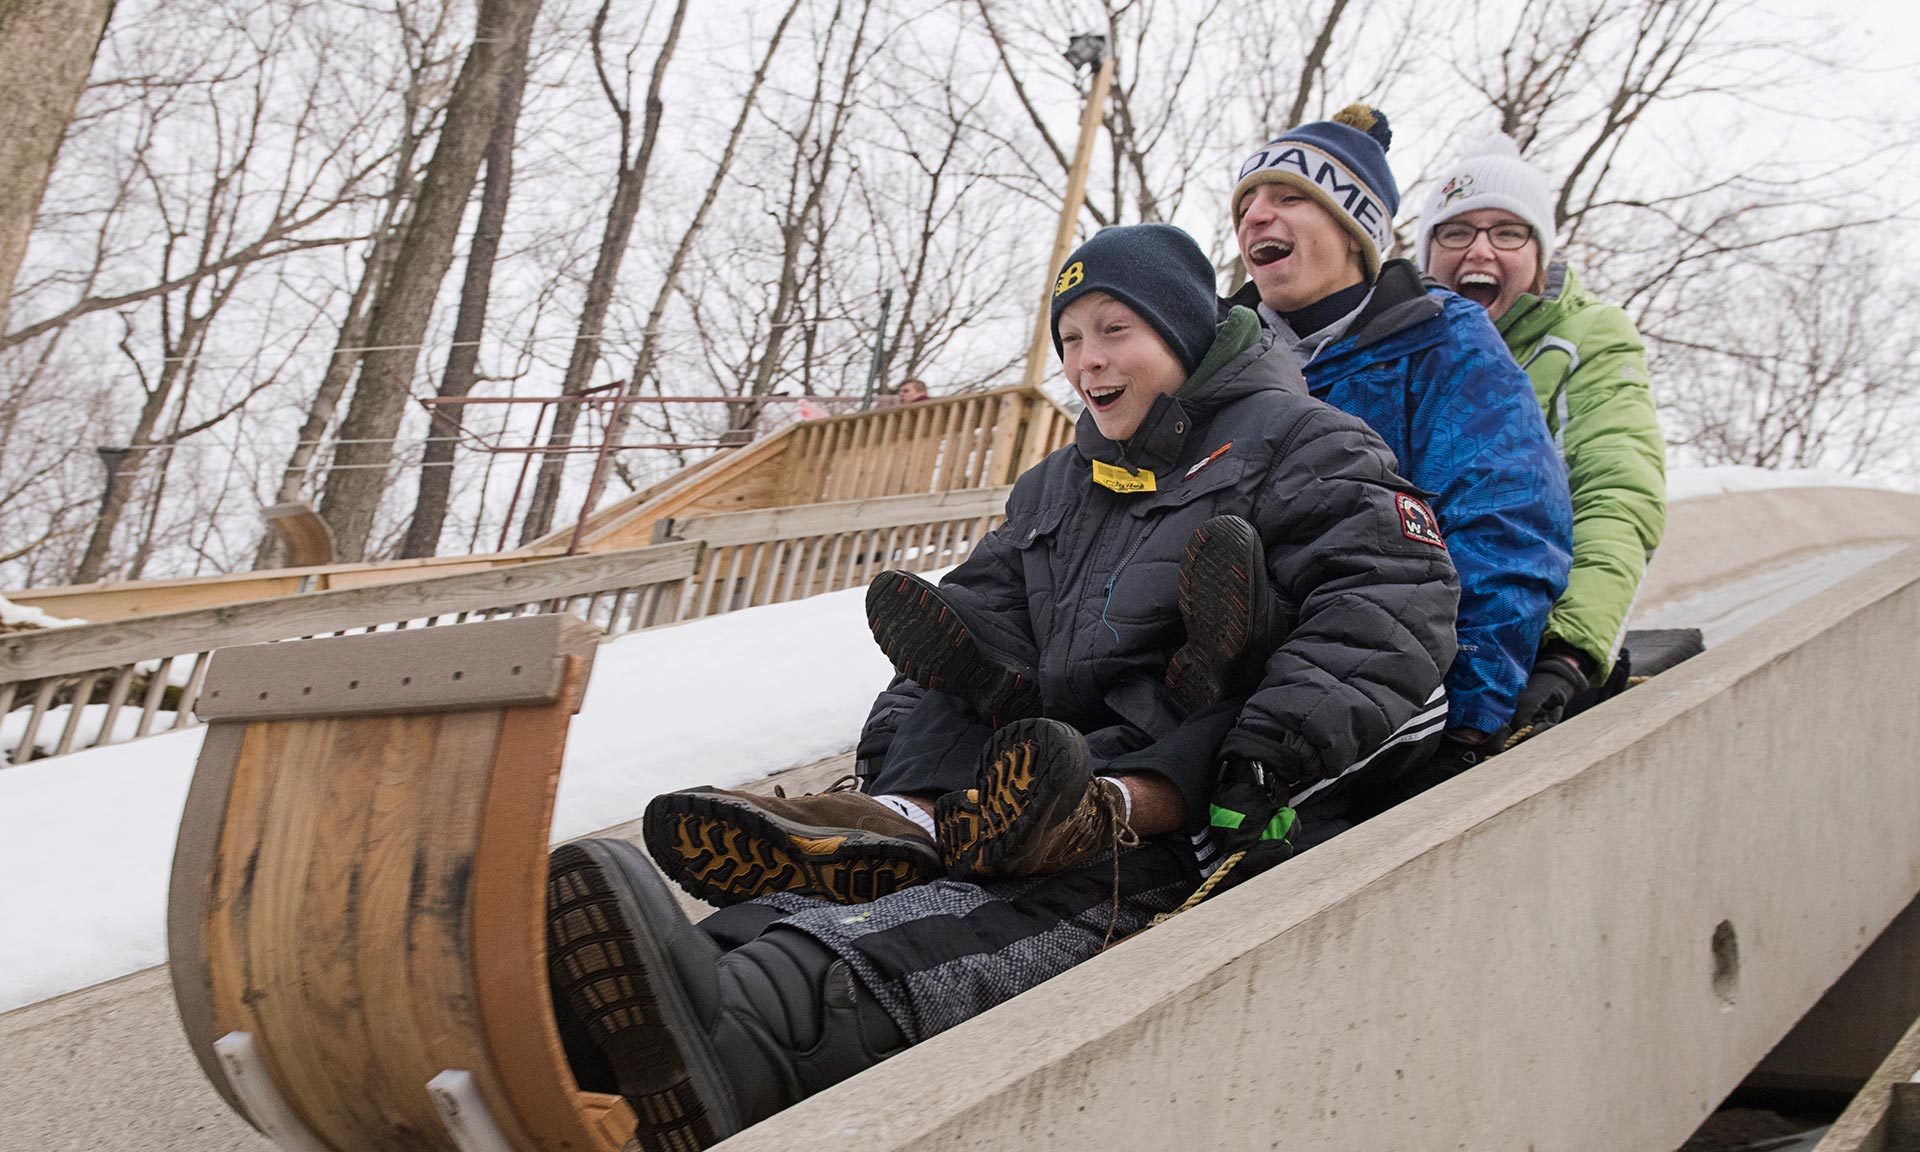 Kids start their ride down toboggan chutes during winter